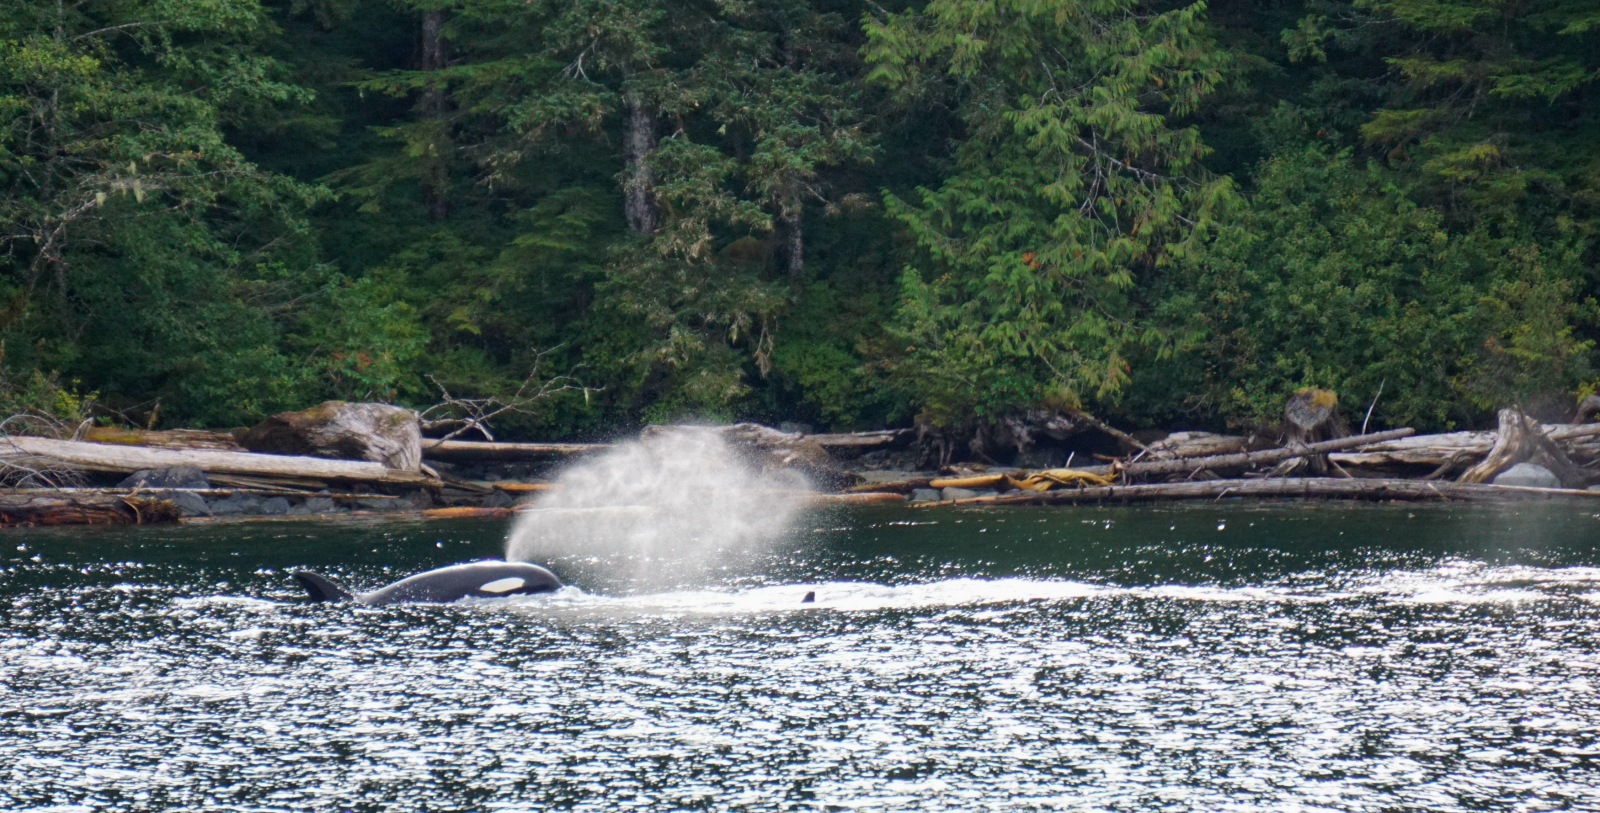 orca, killer whale, Southern Resident Killer whale, Great Bear Rainforest